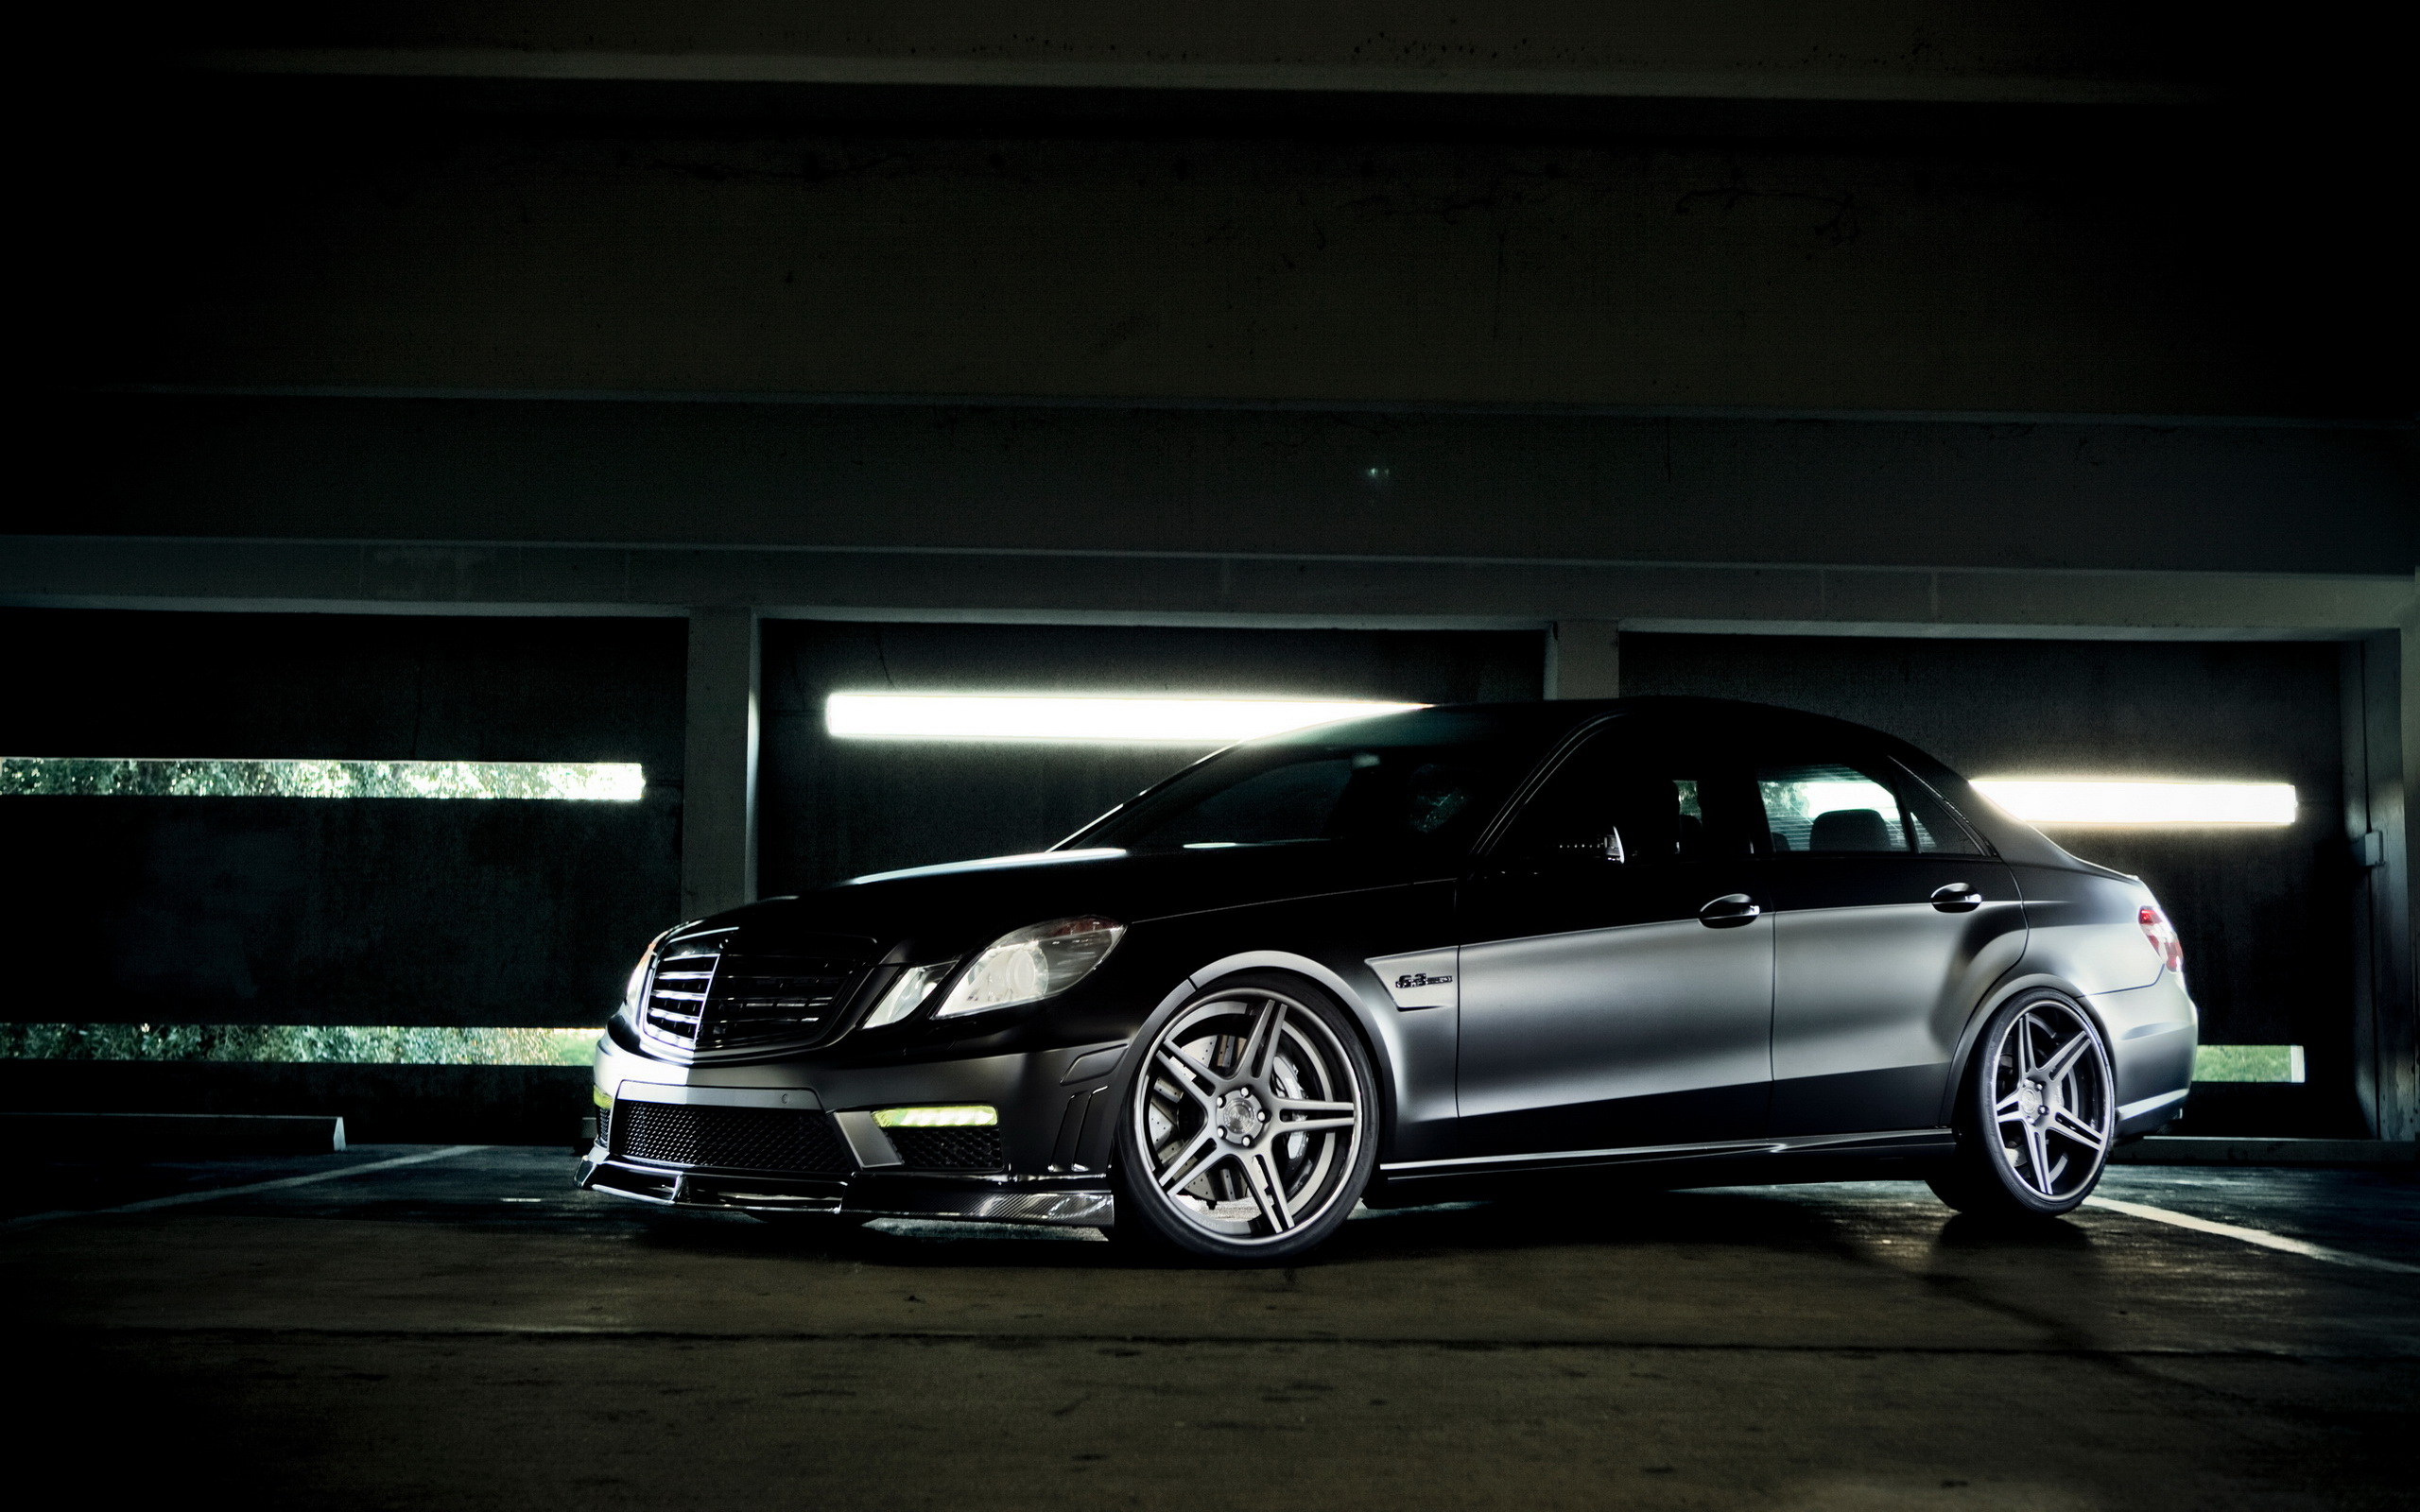 Mercedes Benz E63 AMG wallpapers and images   wallpapers 2560x1600